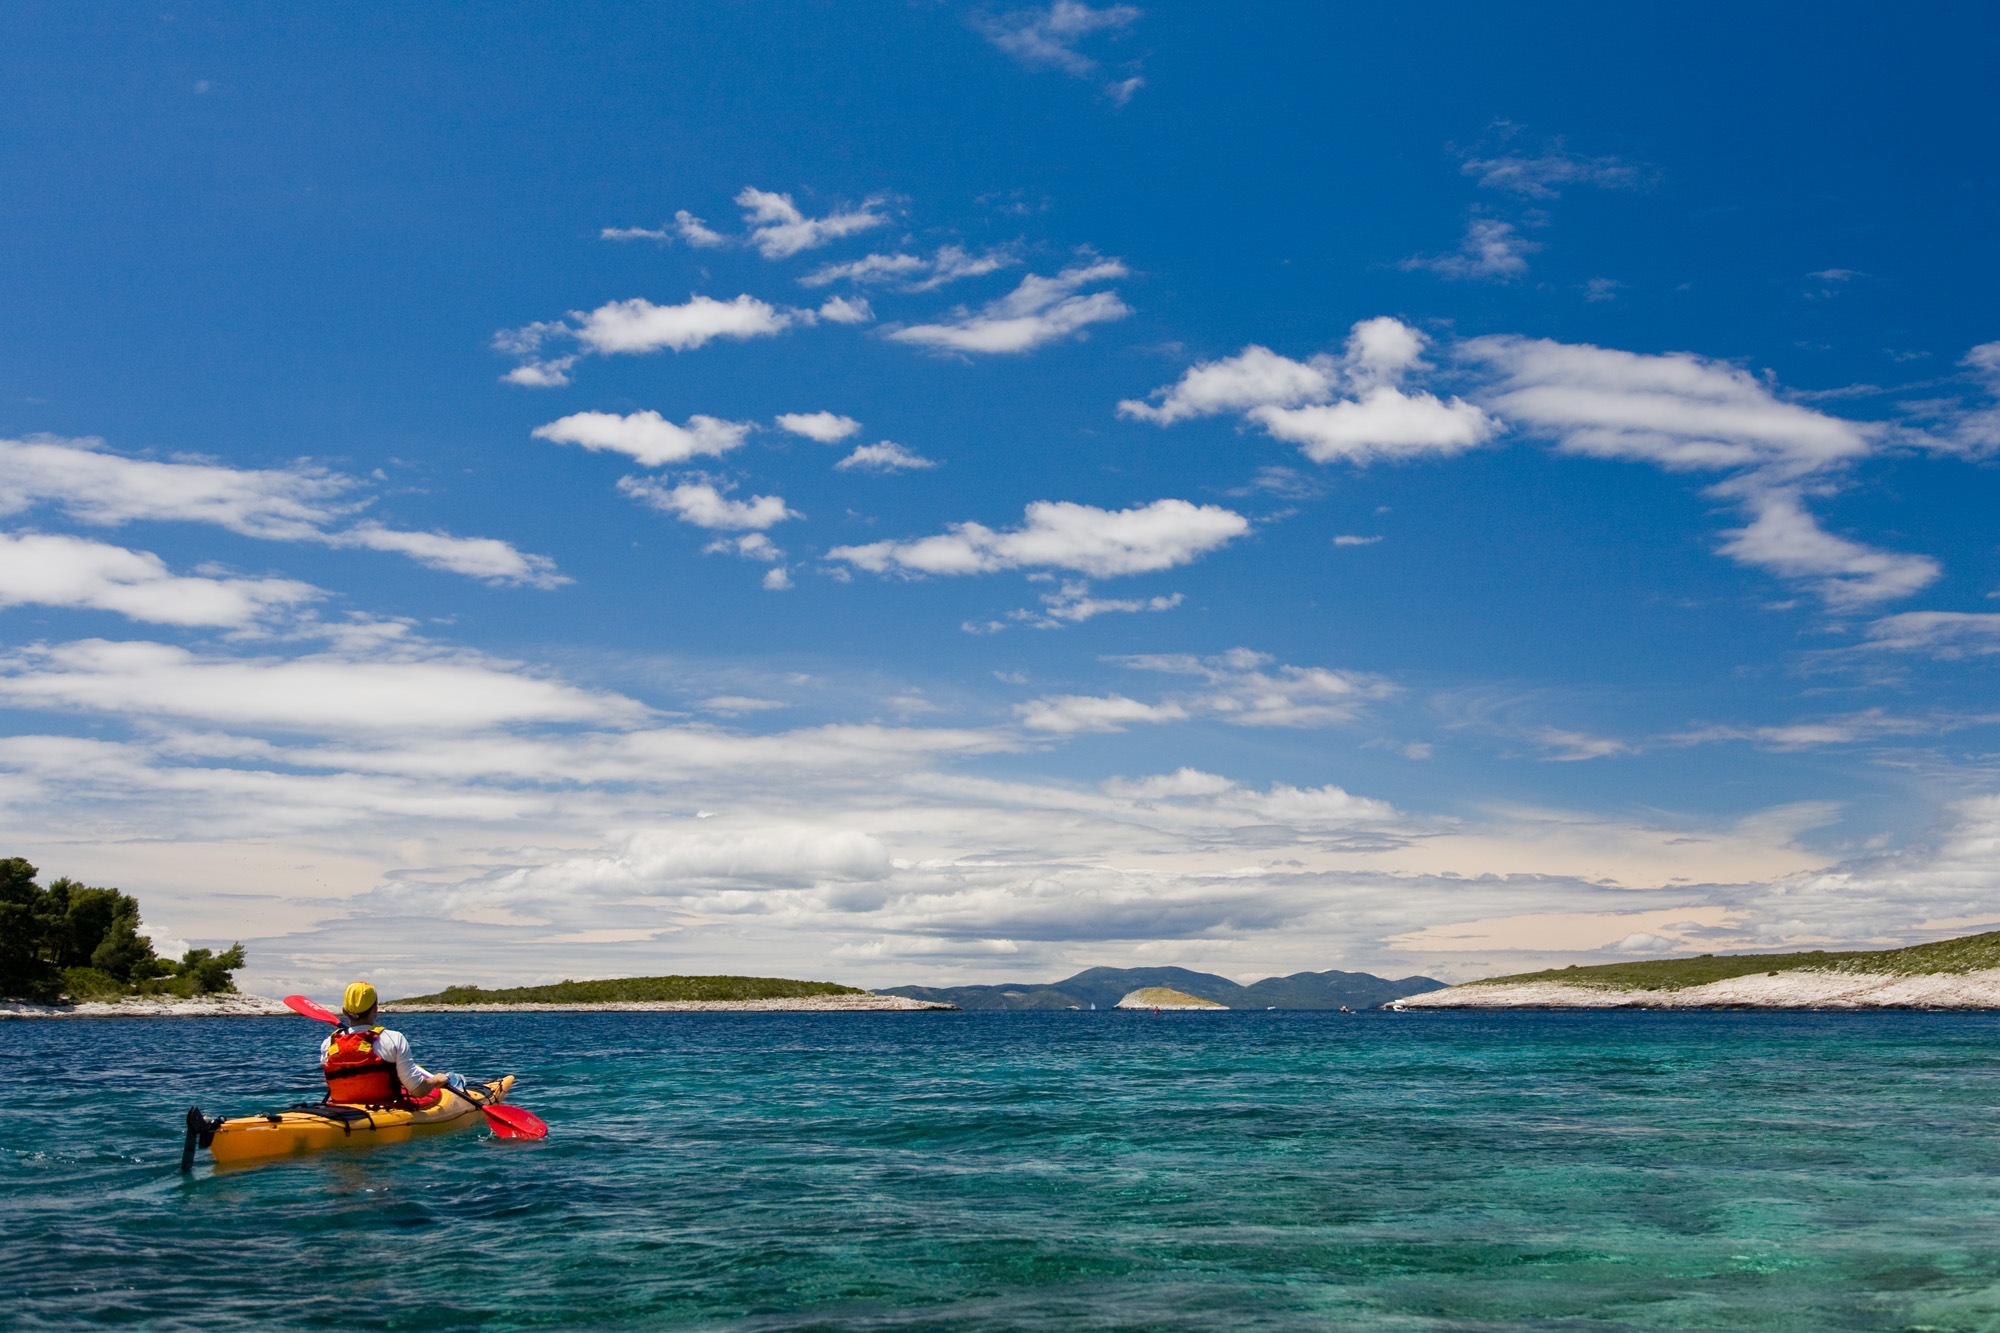 Kayaking in the Pakleni archipelago, Croatia